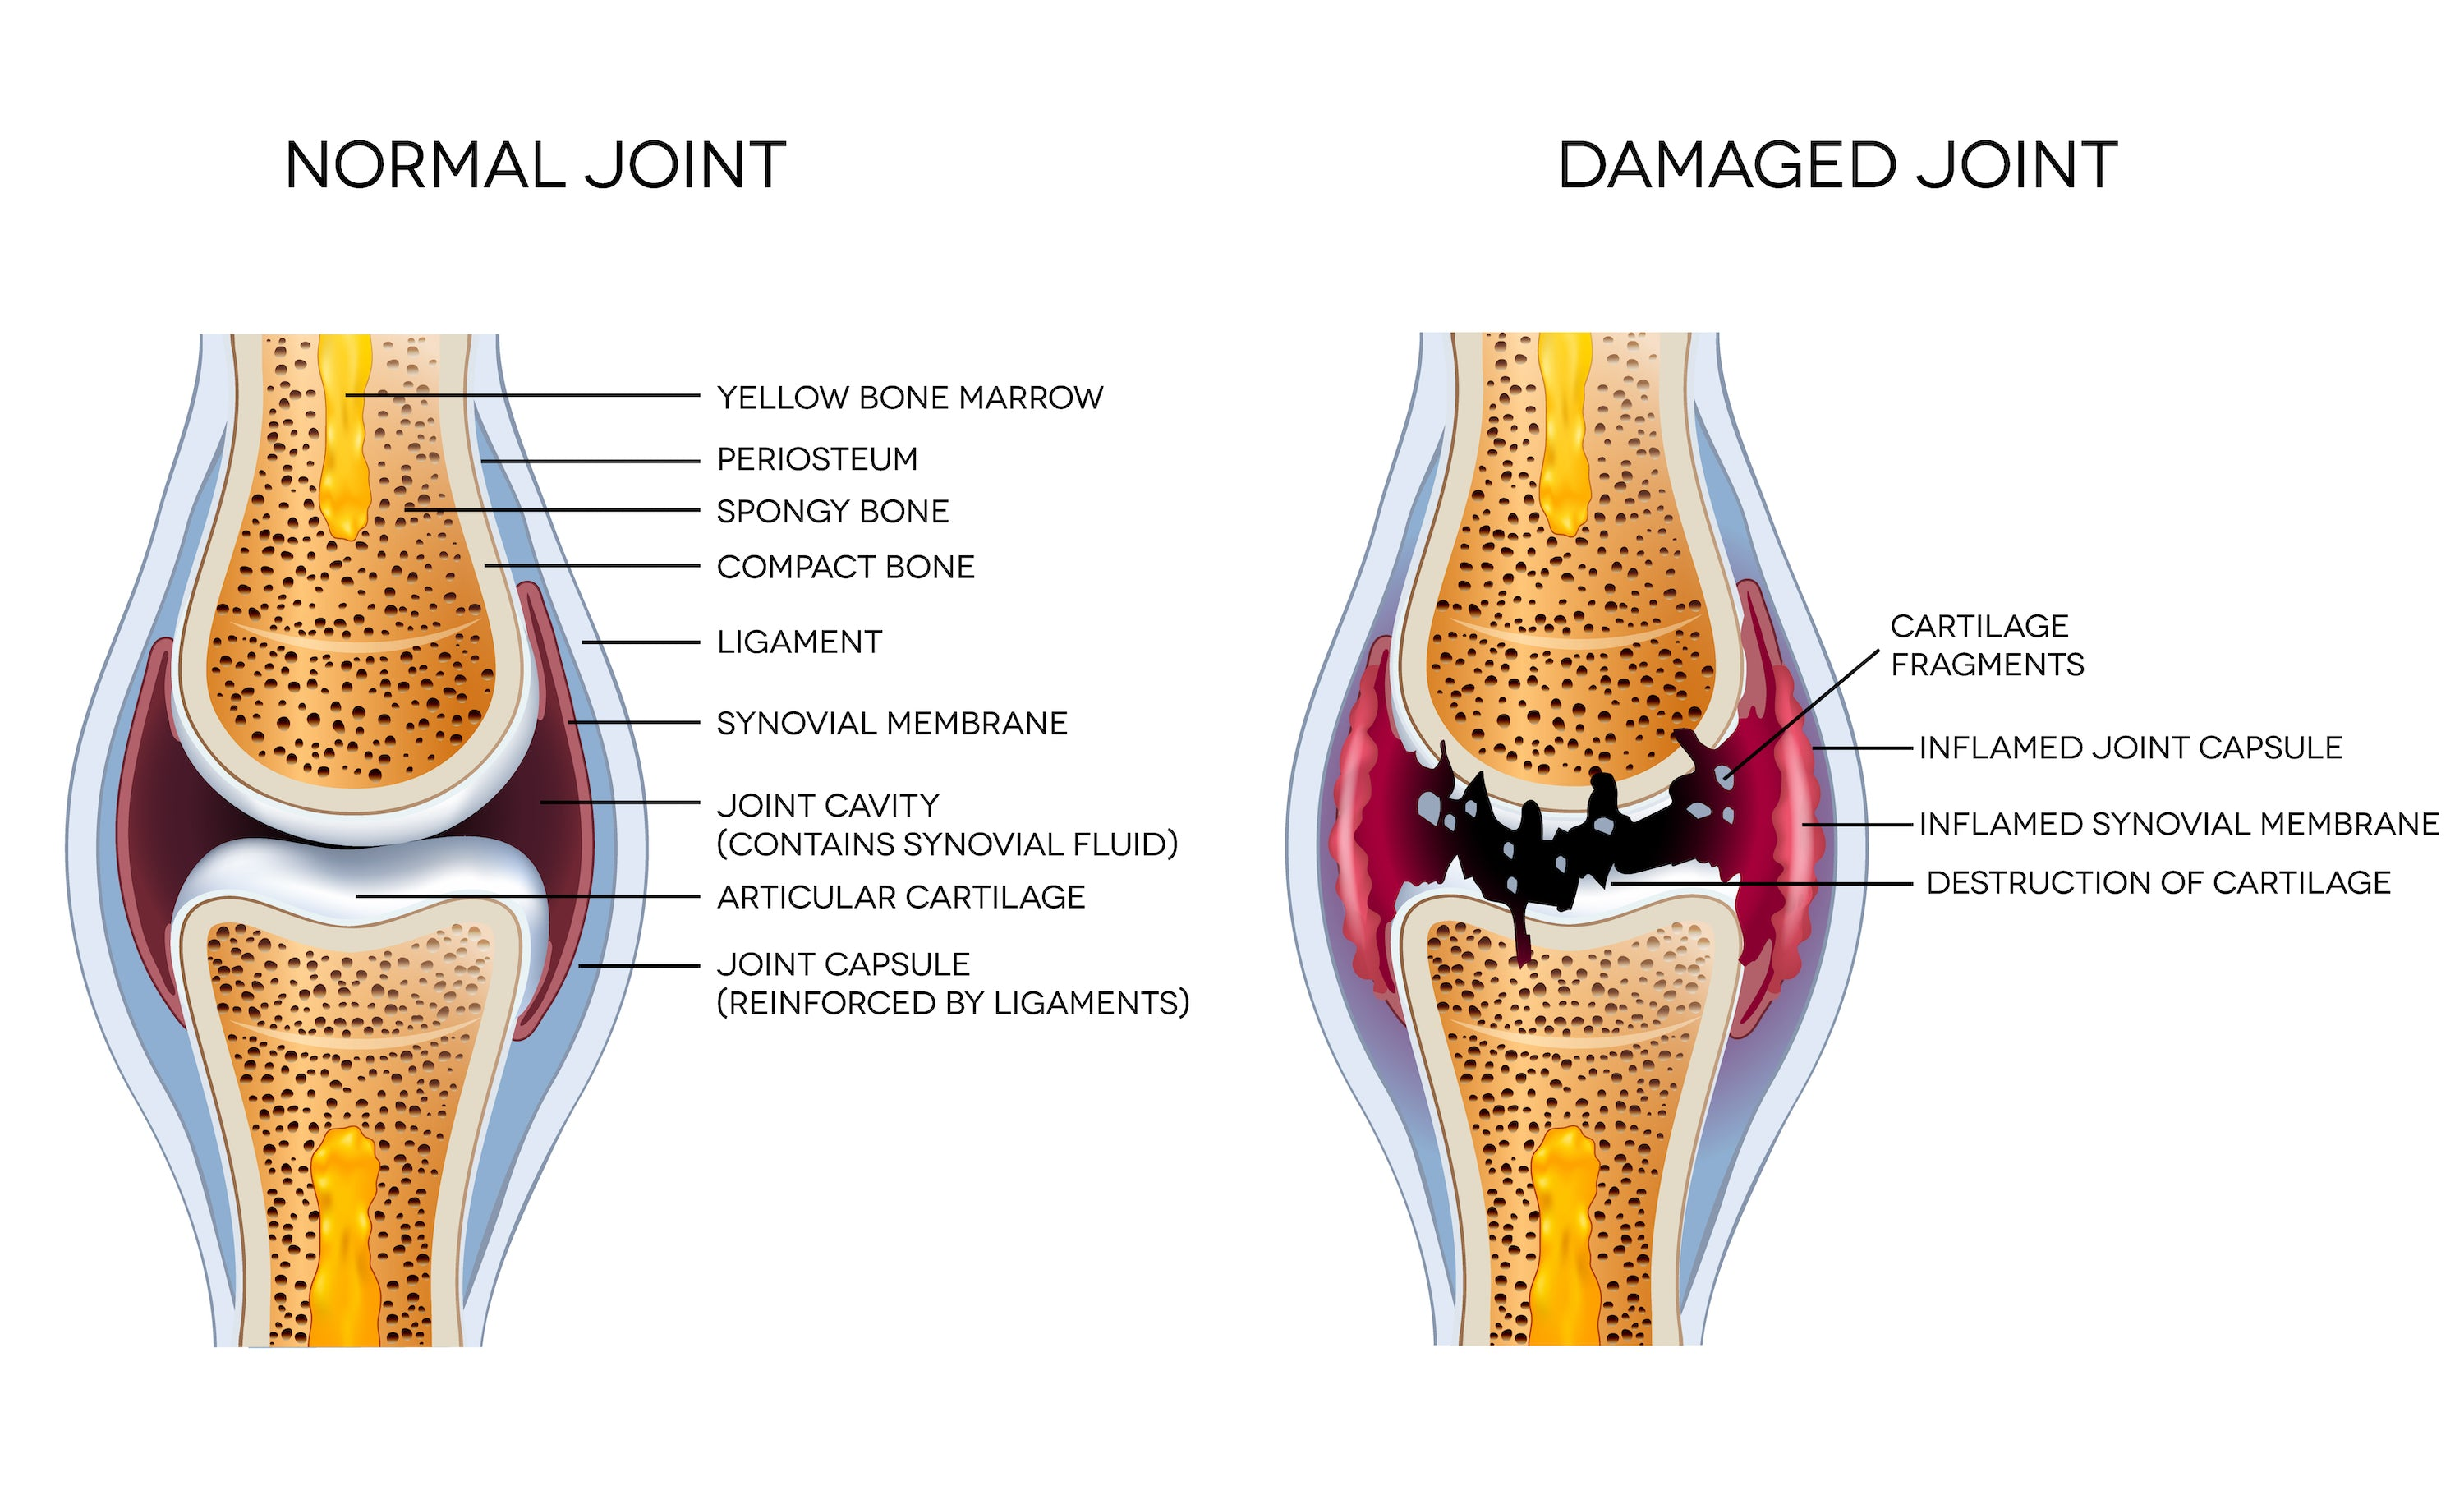 normal joint vs damaged joint comparison